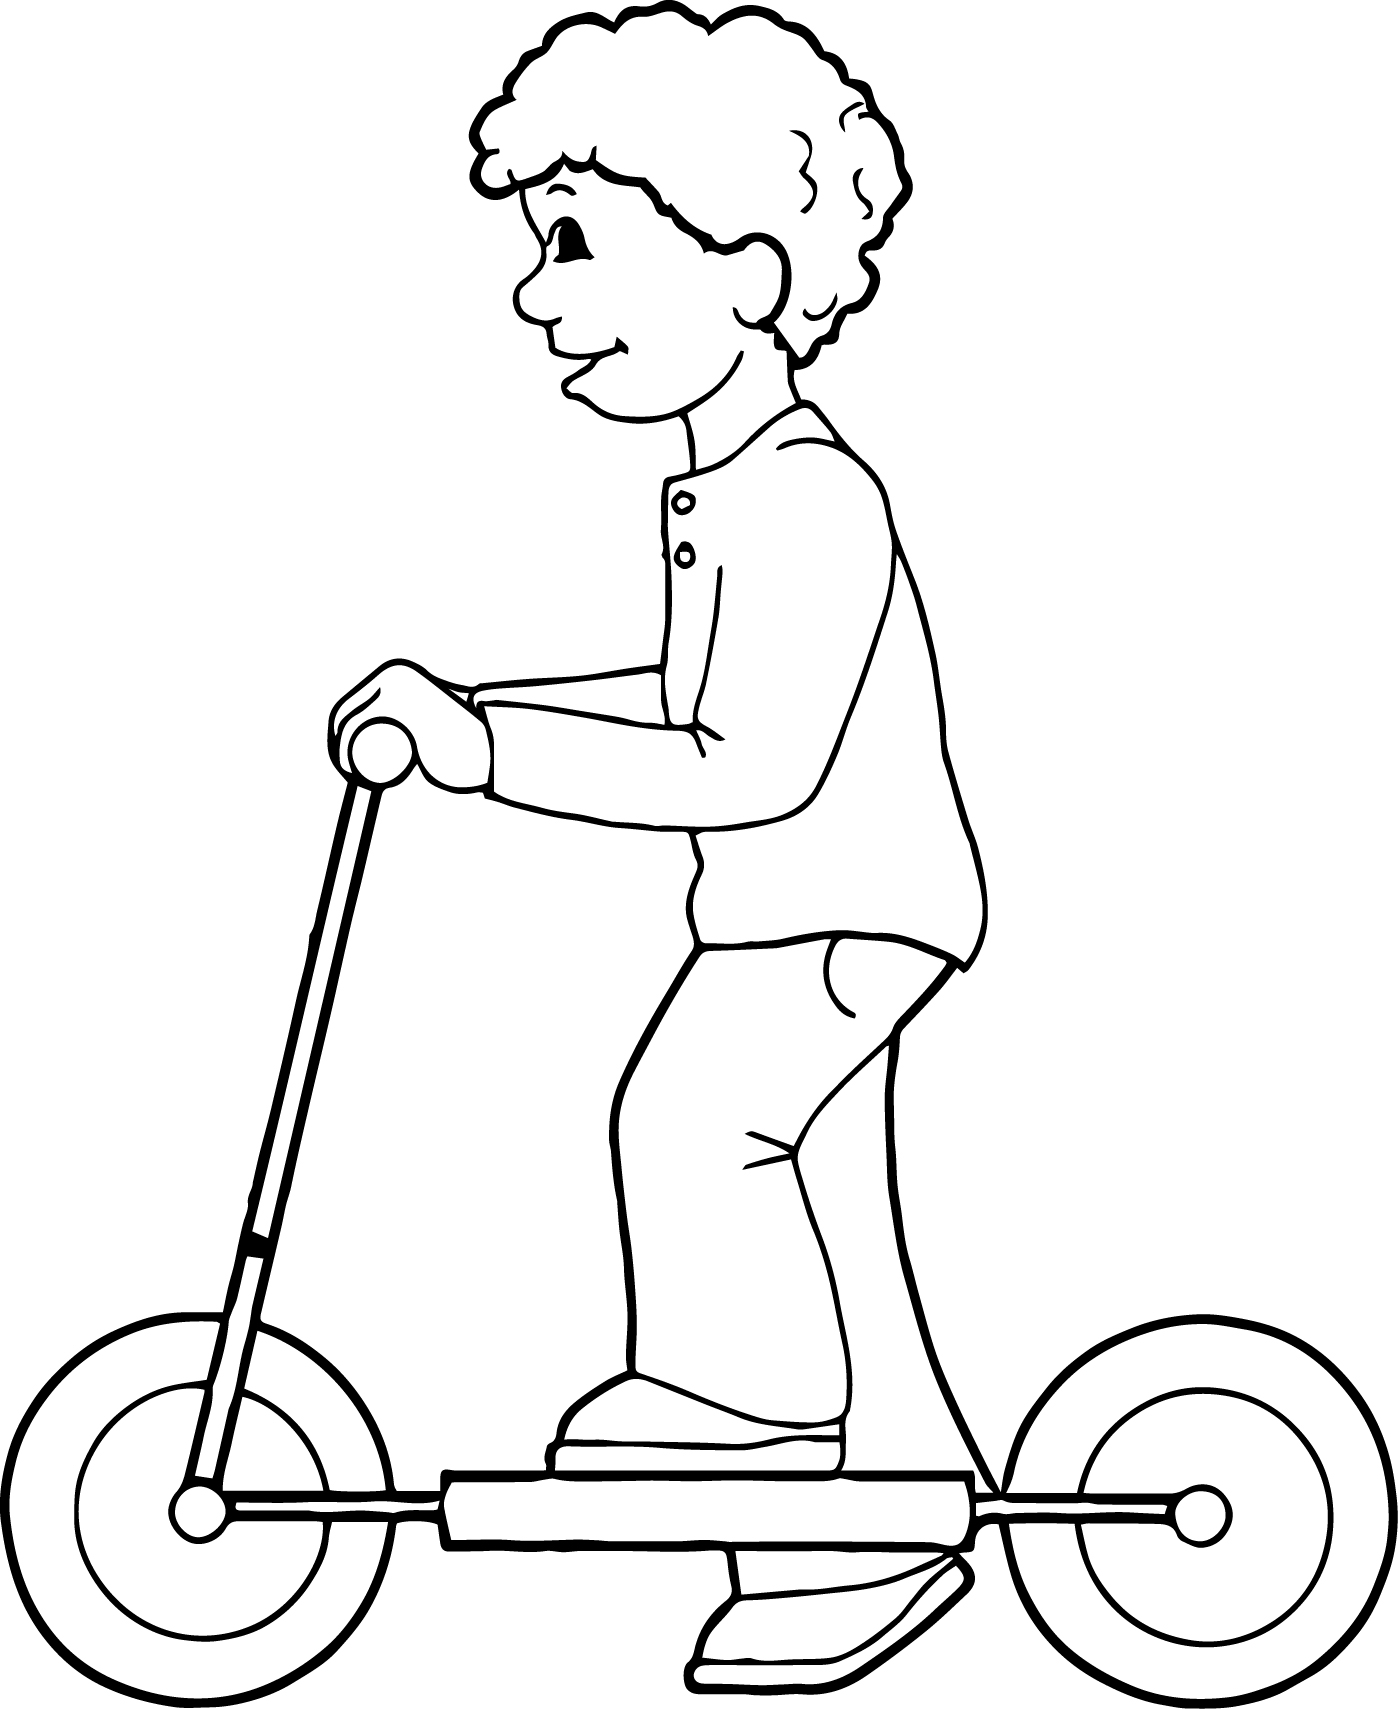 Children Play Biycle Coloring Page